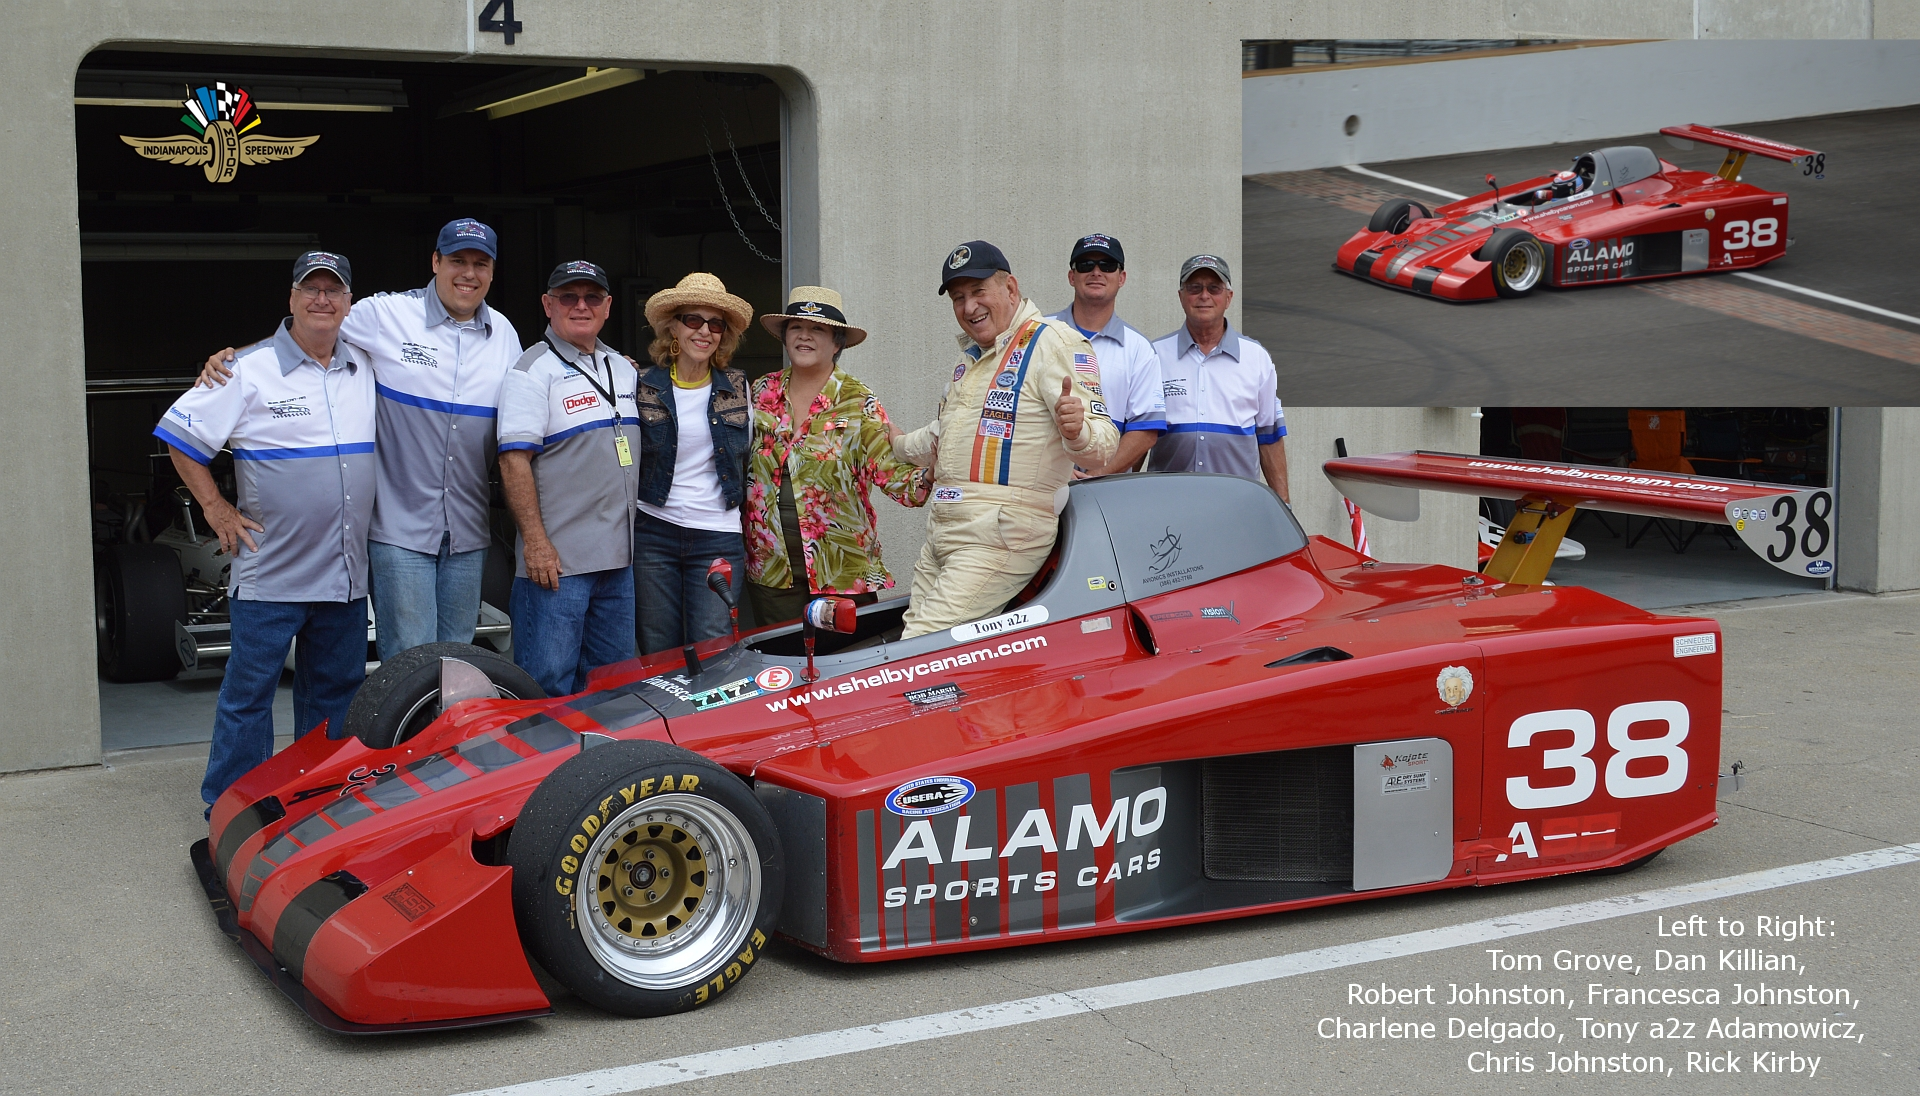 Shelby Can Am Prototype Race Car For Sale $